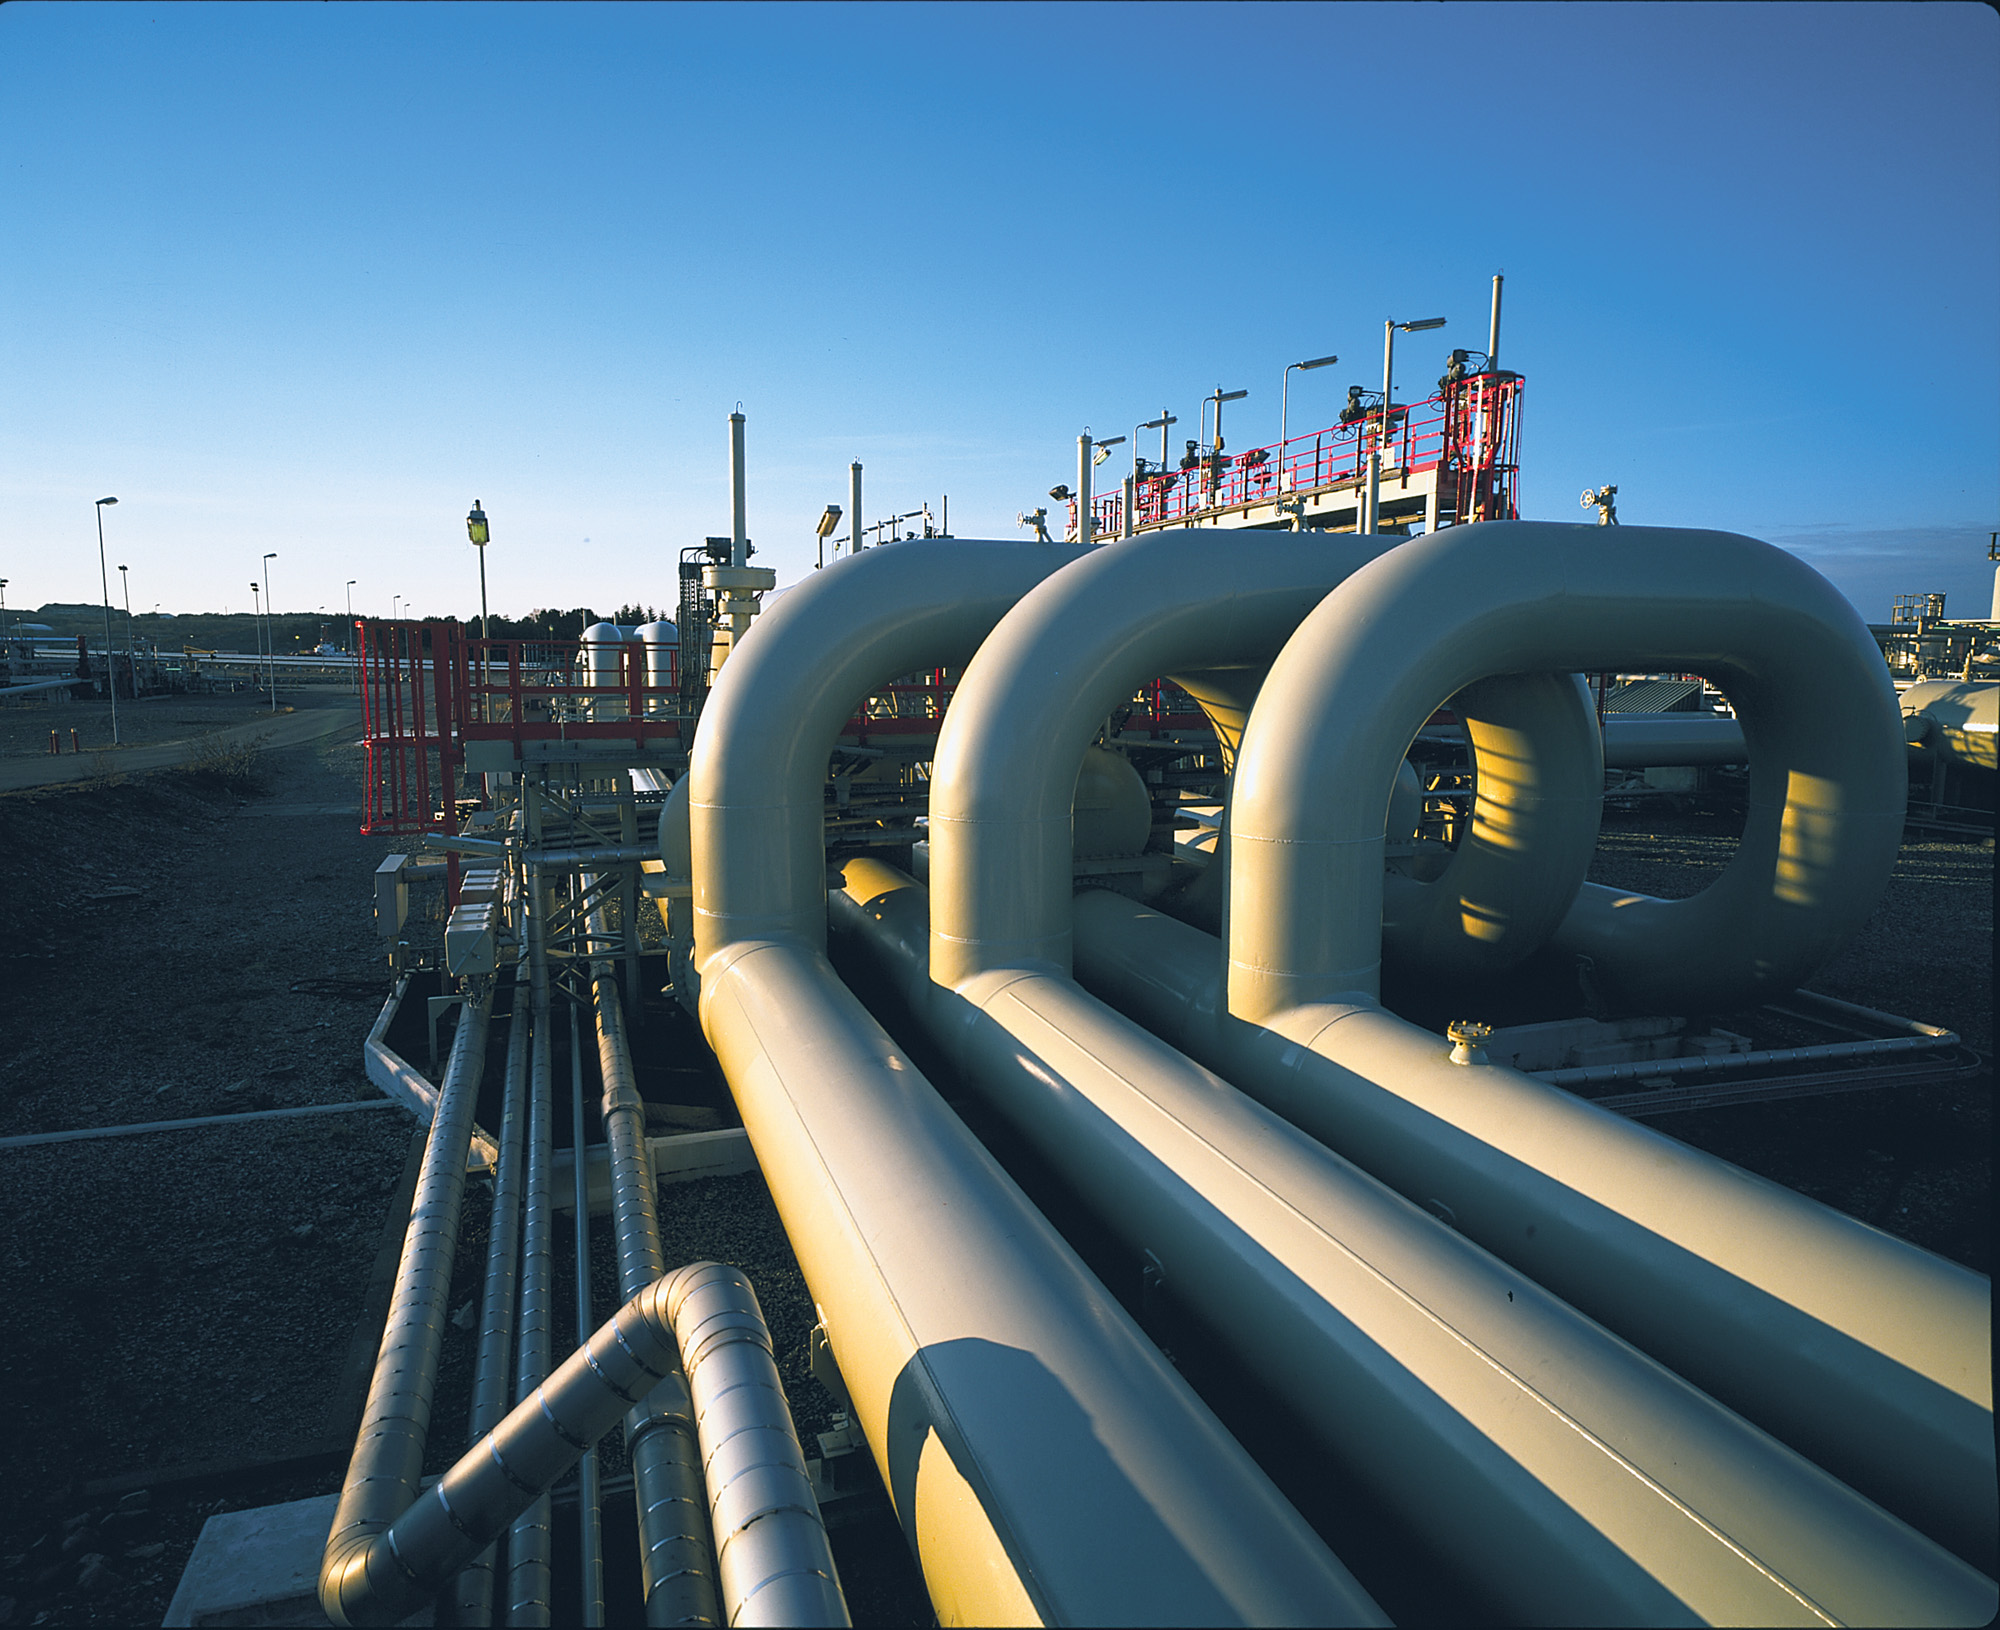 The Fuse Pipeline Company Consolidation Growing Trend